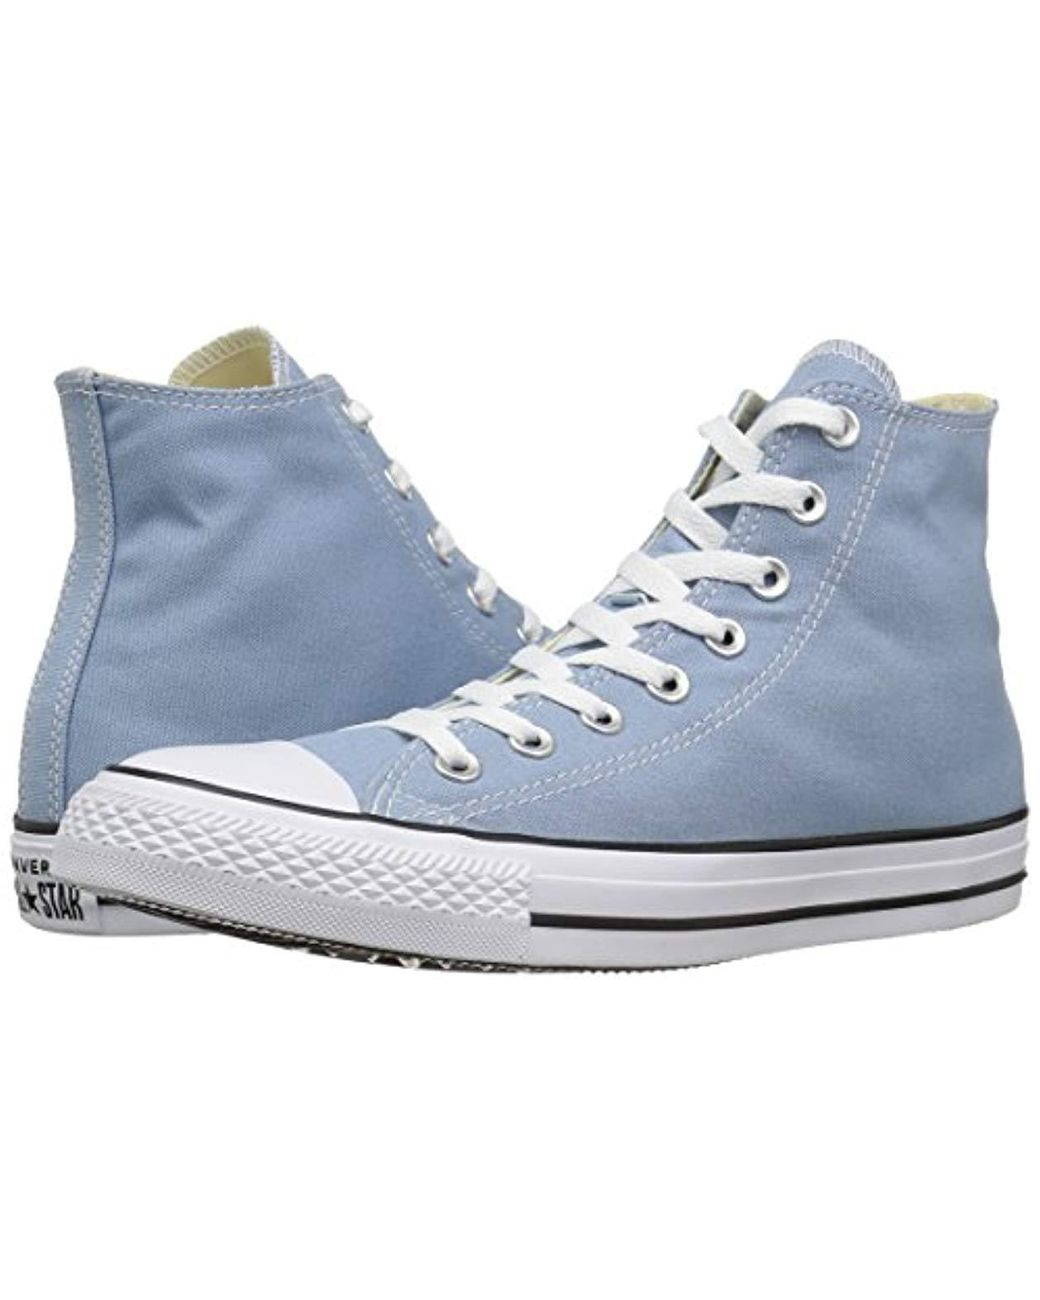 740b2b31a68d Lyst - Converse Unisex Chuck Taylor As Specialty Hi Lace-up in Blue for Men  - Save 25%